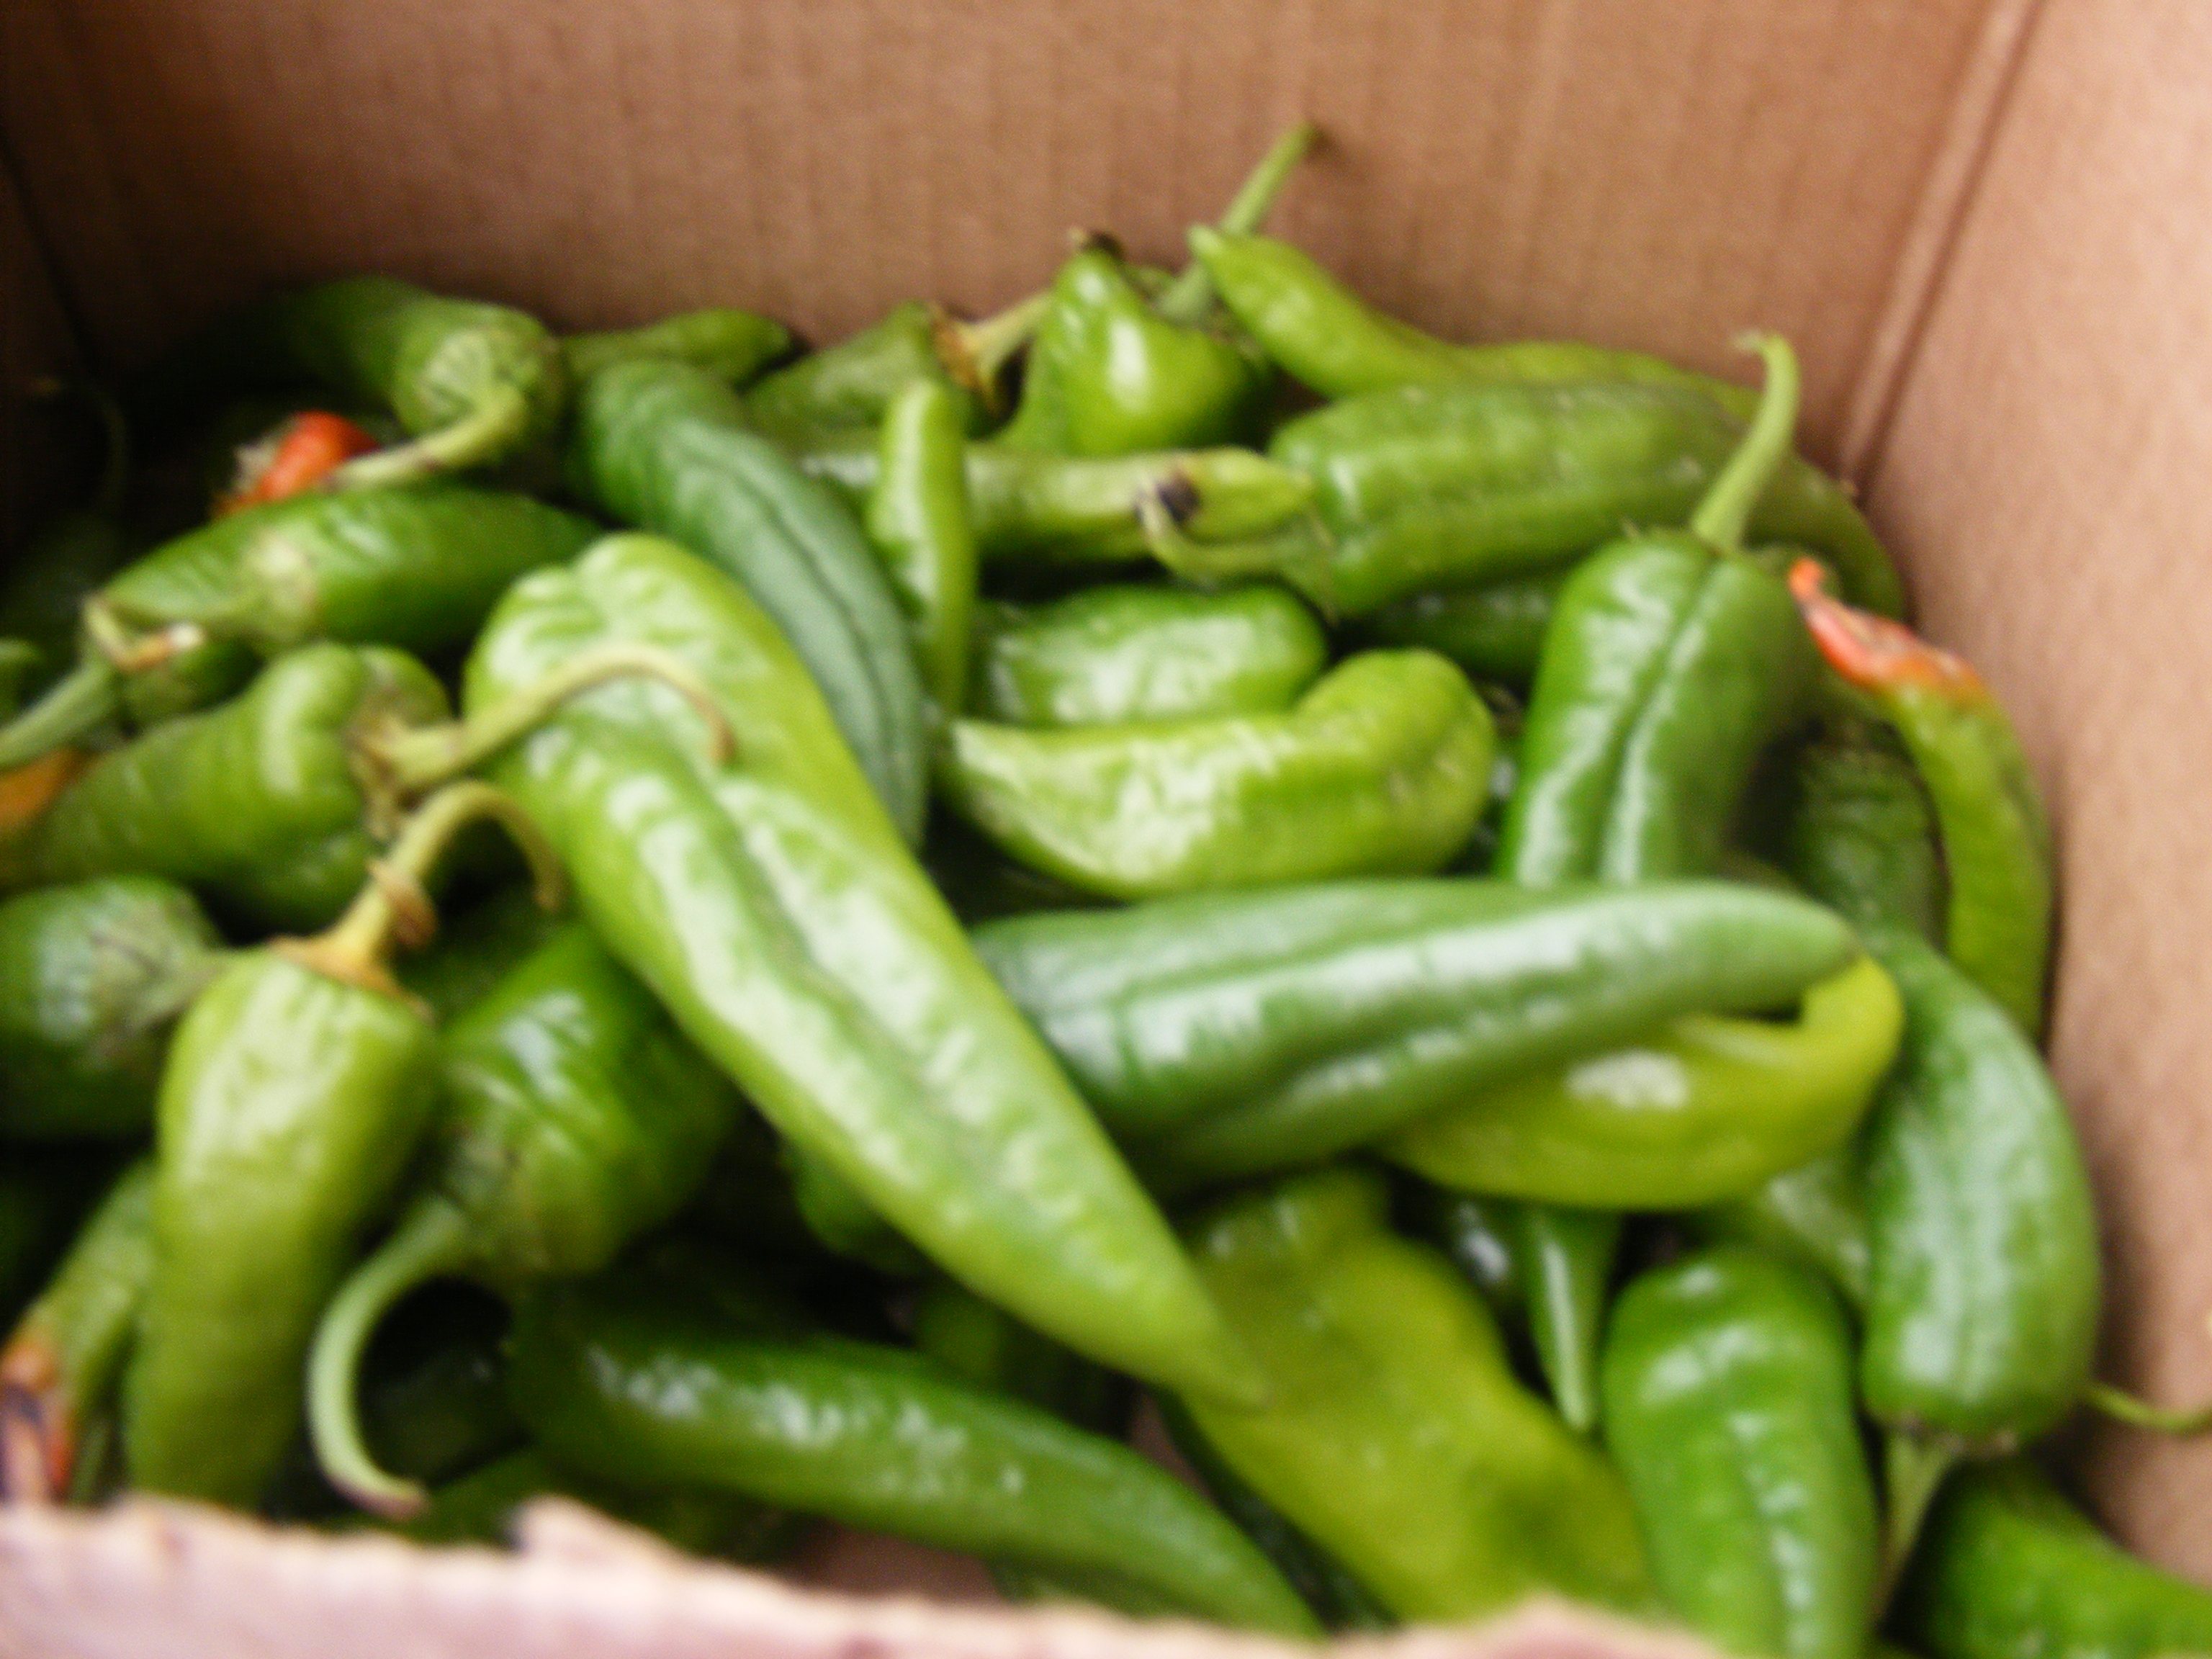 Peppers harvested from the garden. Photo Source: Frank and Kay Whatley.